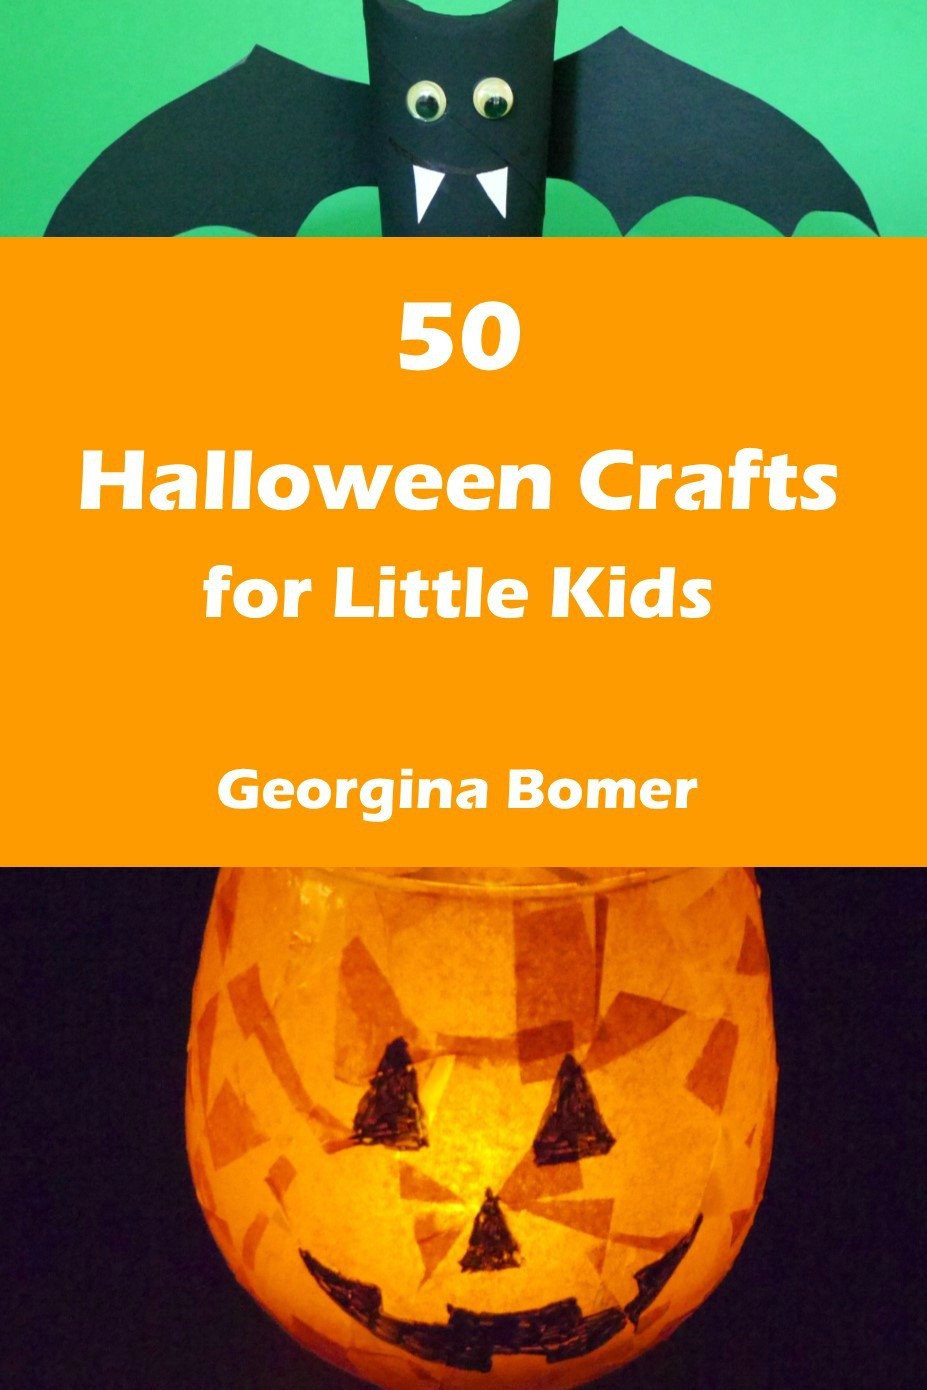 Best ideas about Crafts For Little Kids . Save or Pin 50 Halloween Crafts for Little Kids the book Craftulate Now.